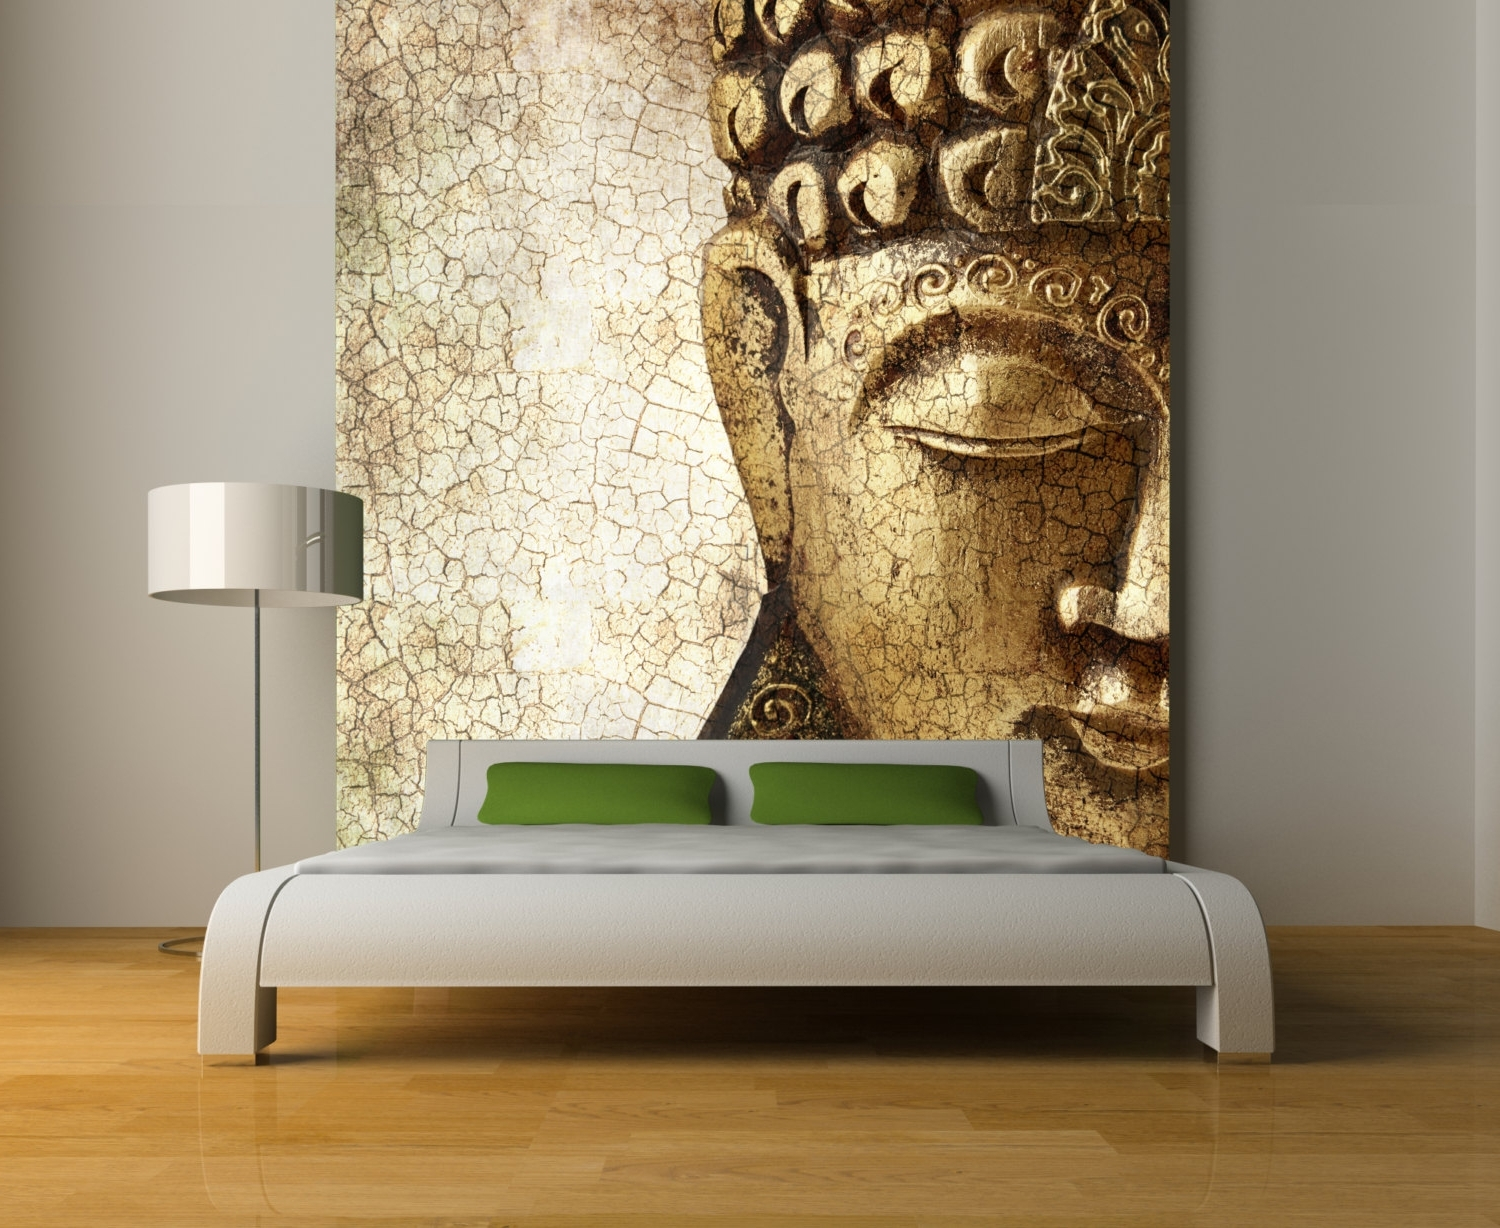 Buddha Wall Mural Repositionable Peel And Stick Wallstyleawall With Regard To Well Known Murals Wall Accents (View 3 of 15)